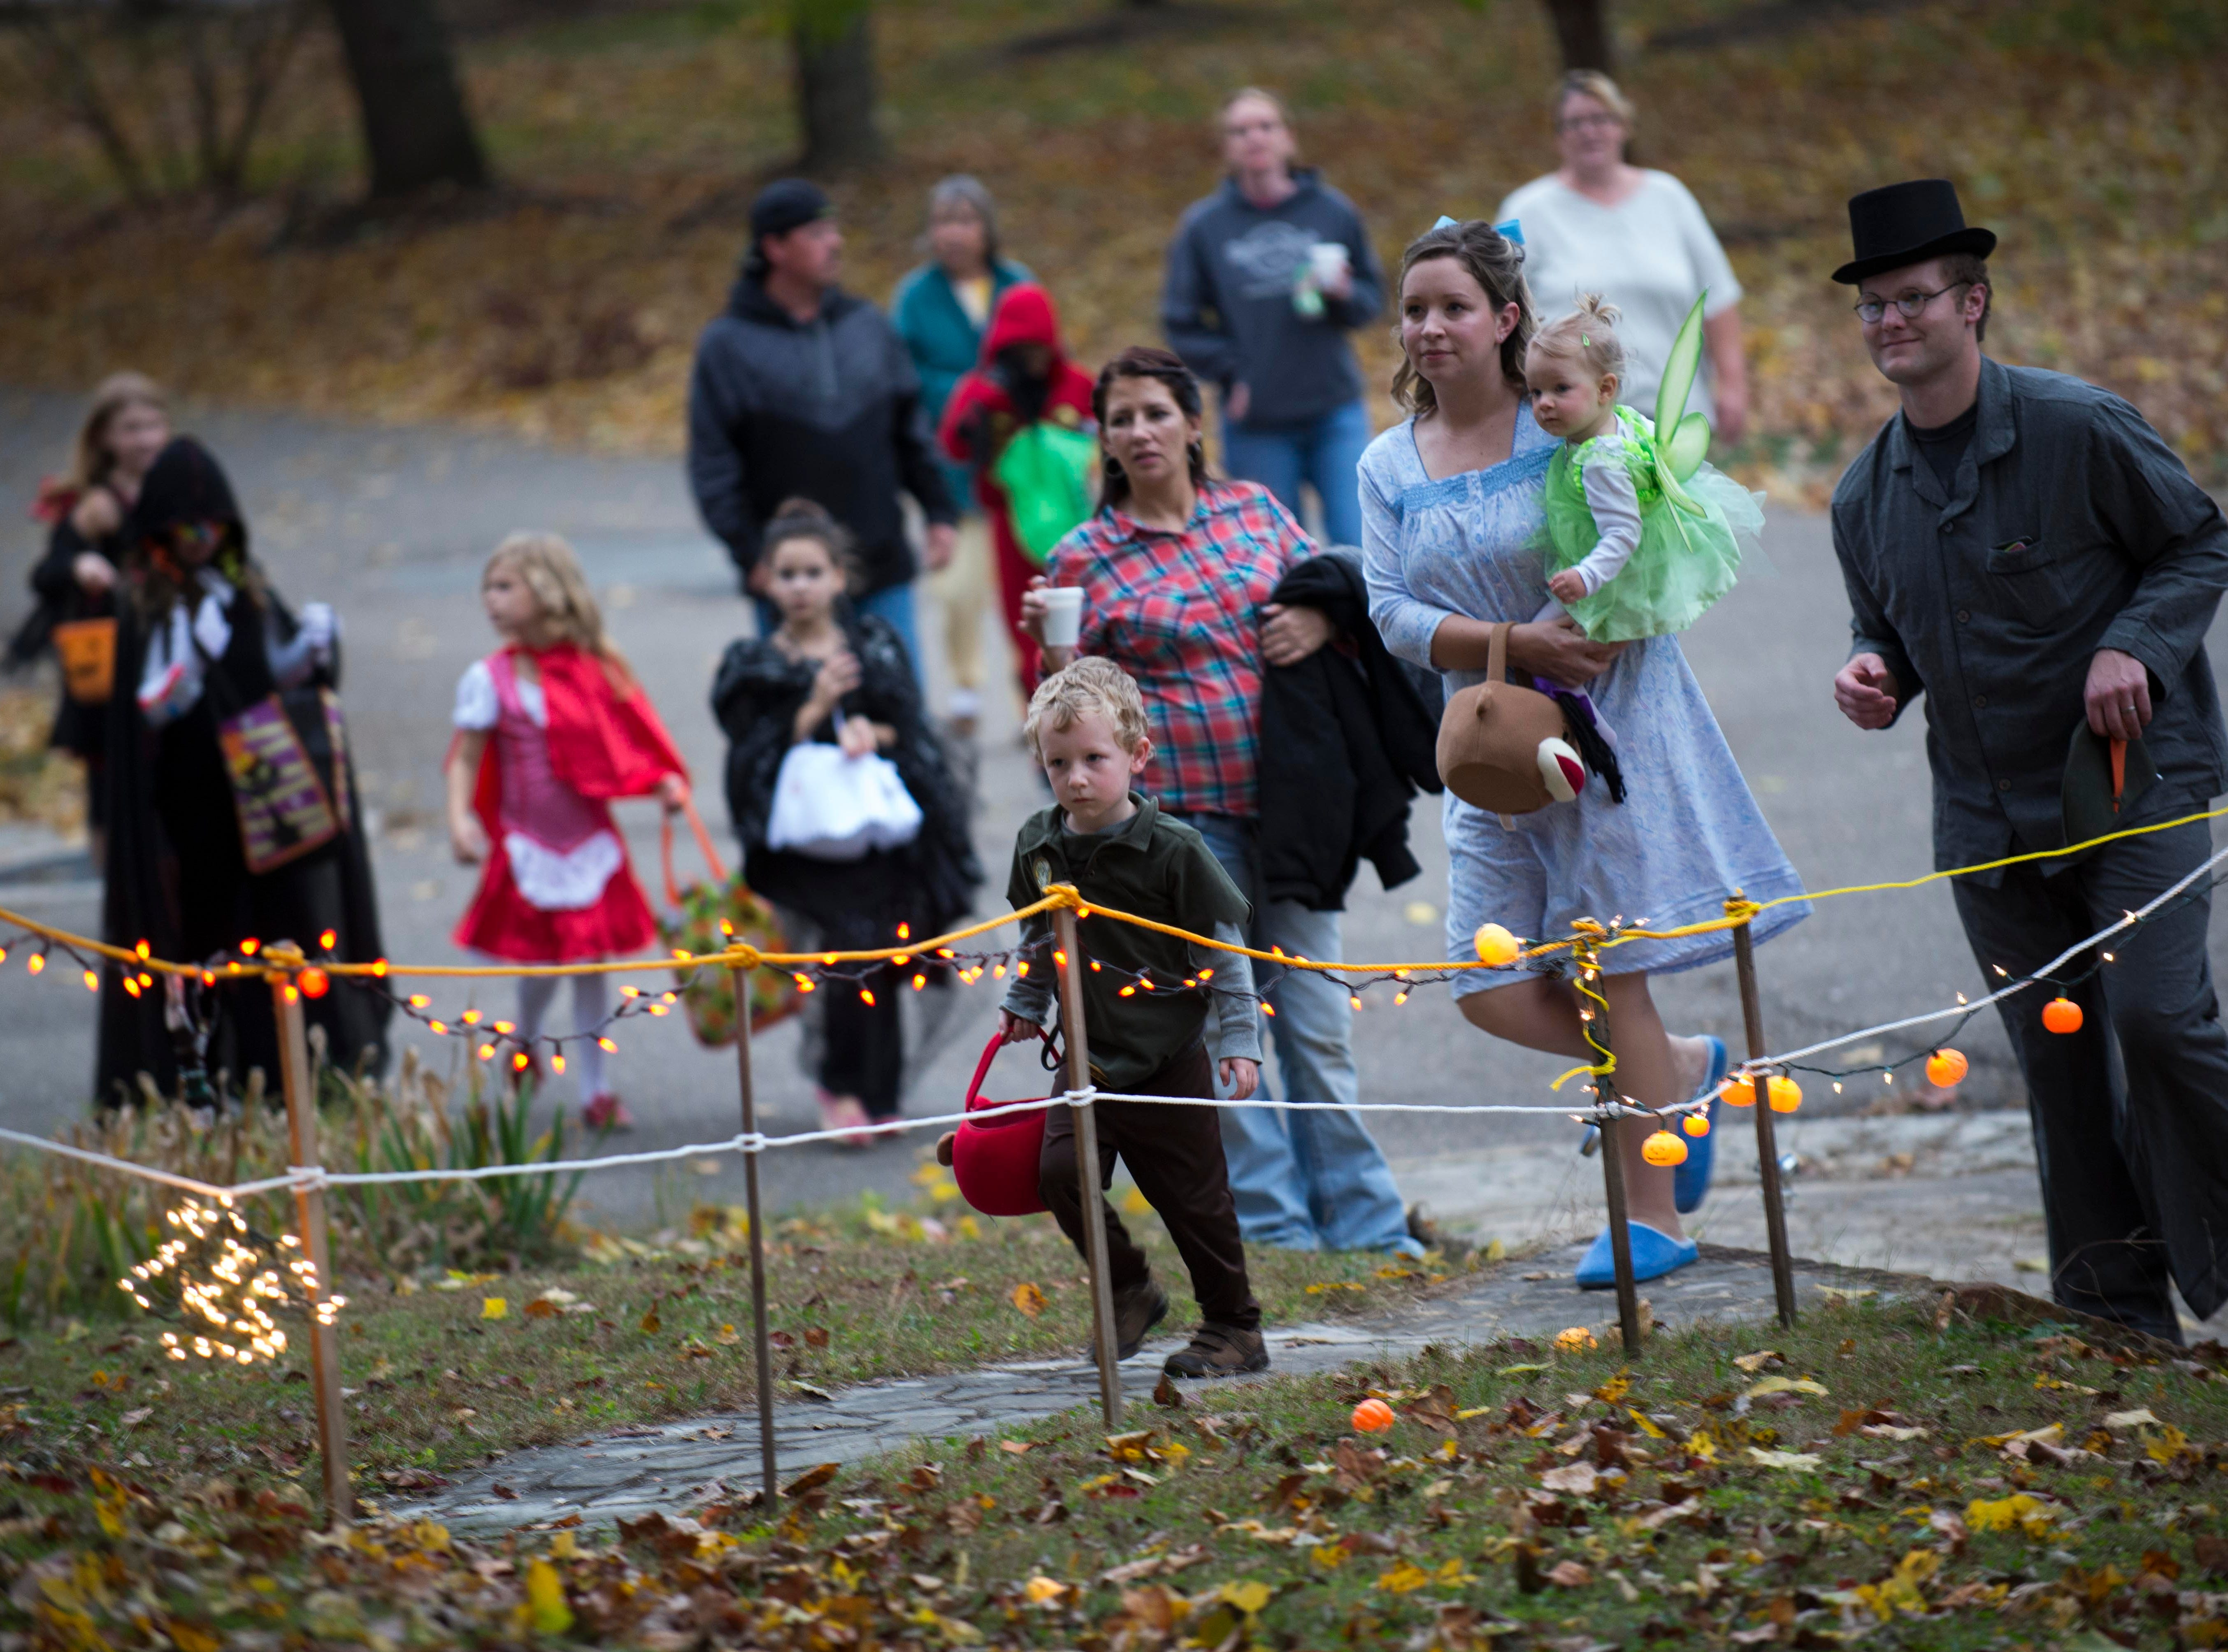 Trick or treaters haunt Island Home Boulevard on Thursday, Oct. 31, 2013, in South Knoxville.